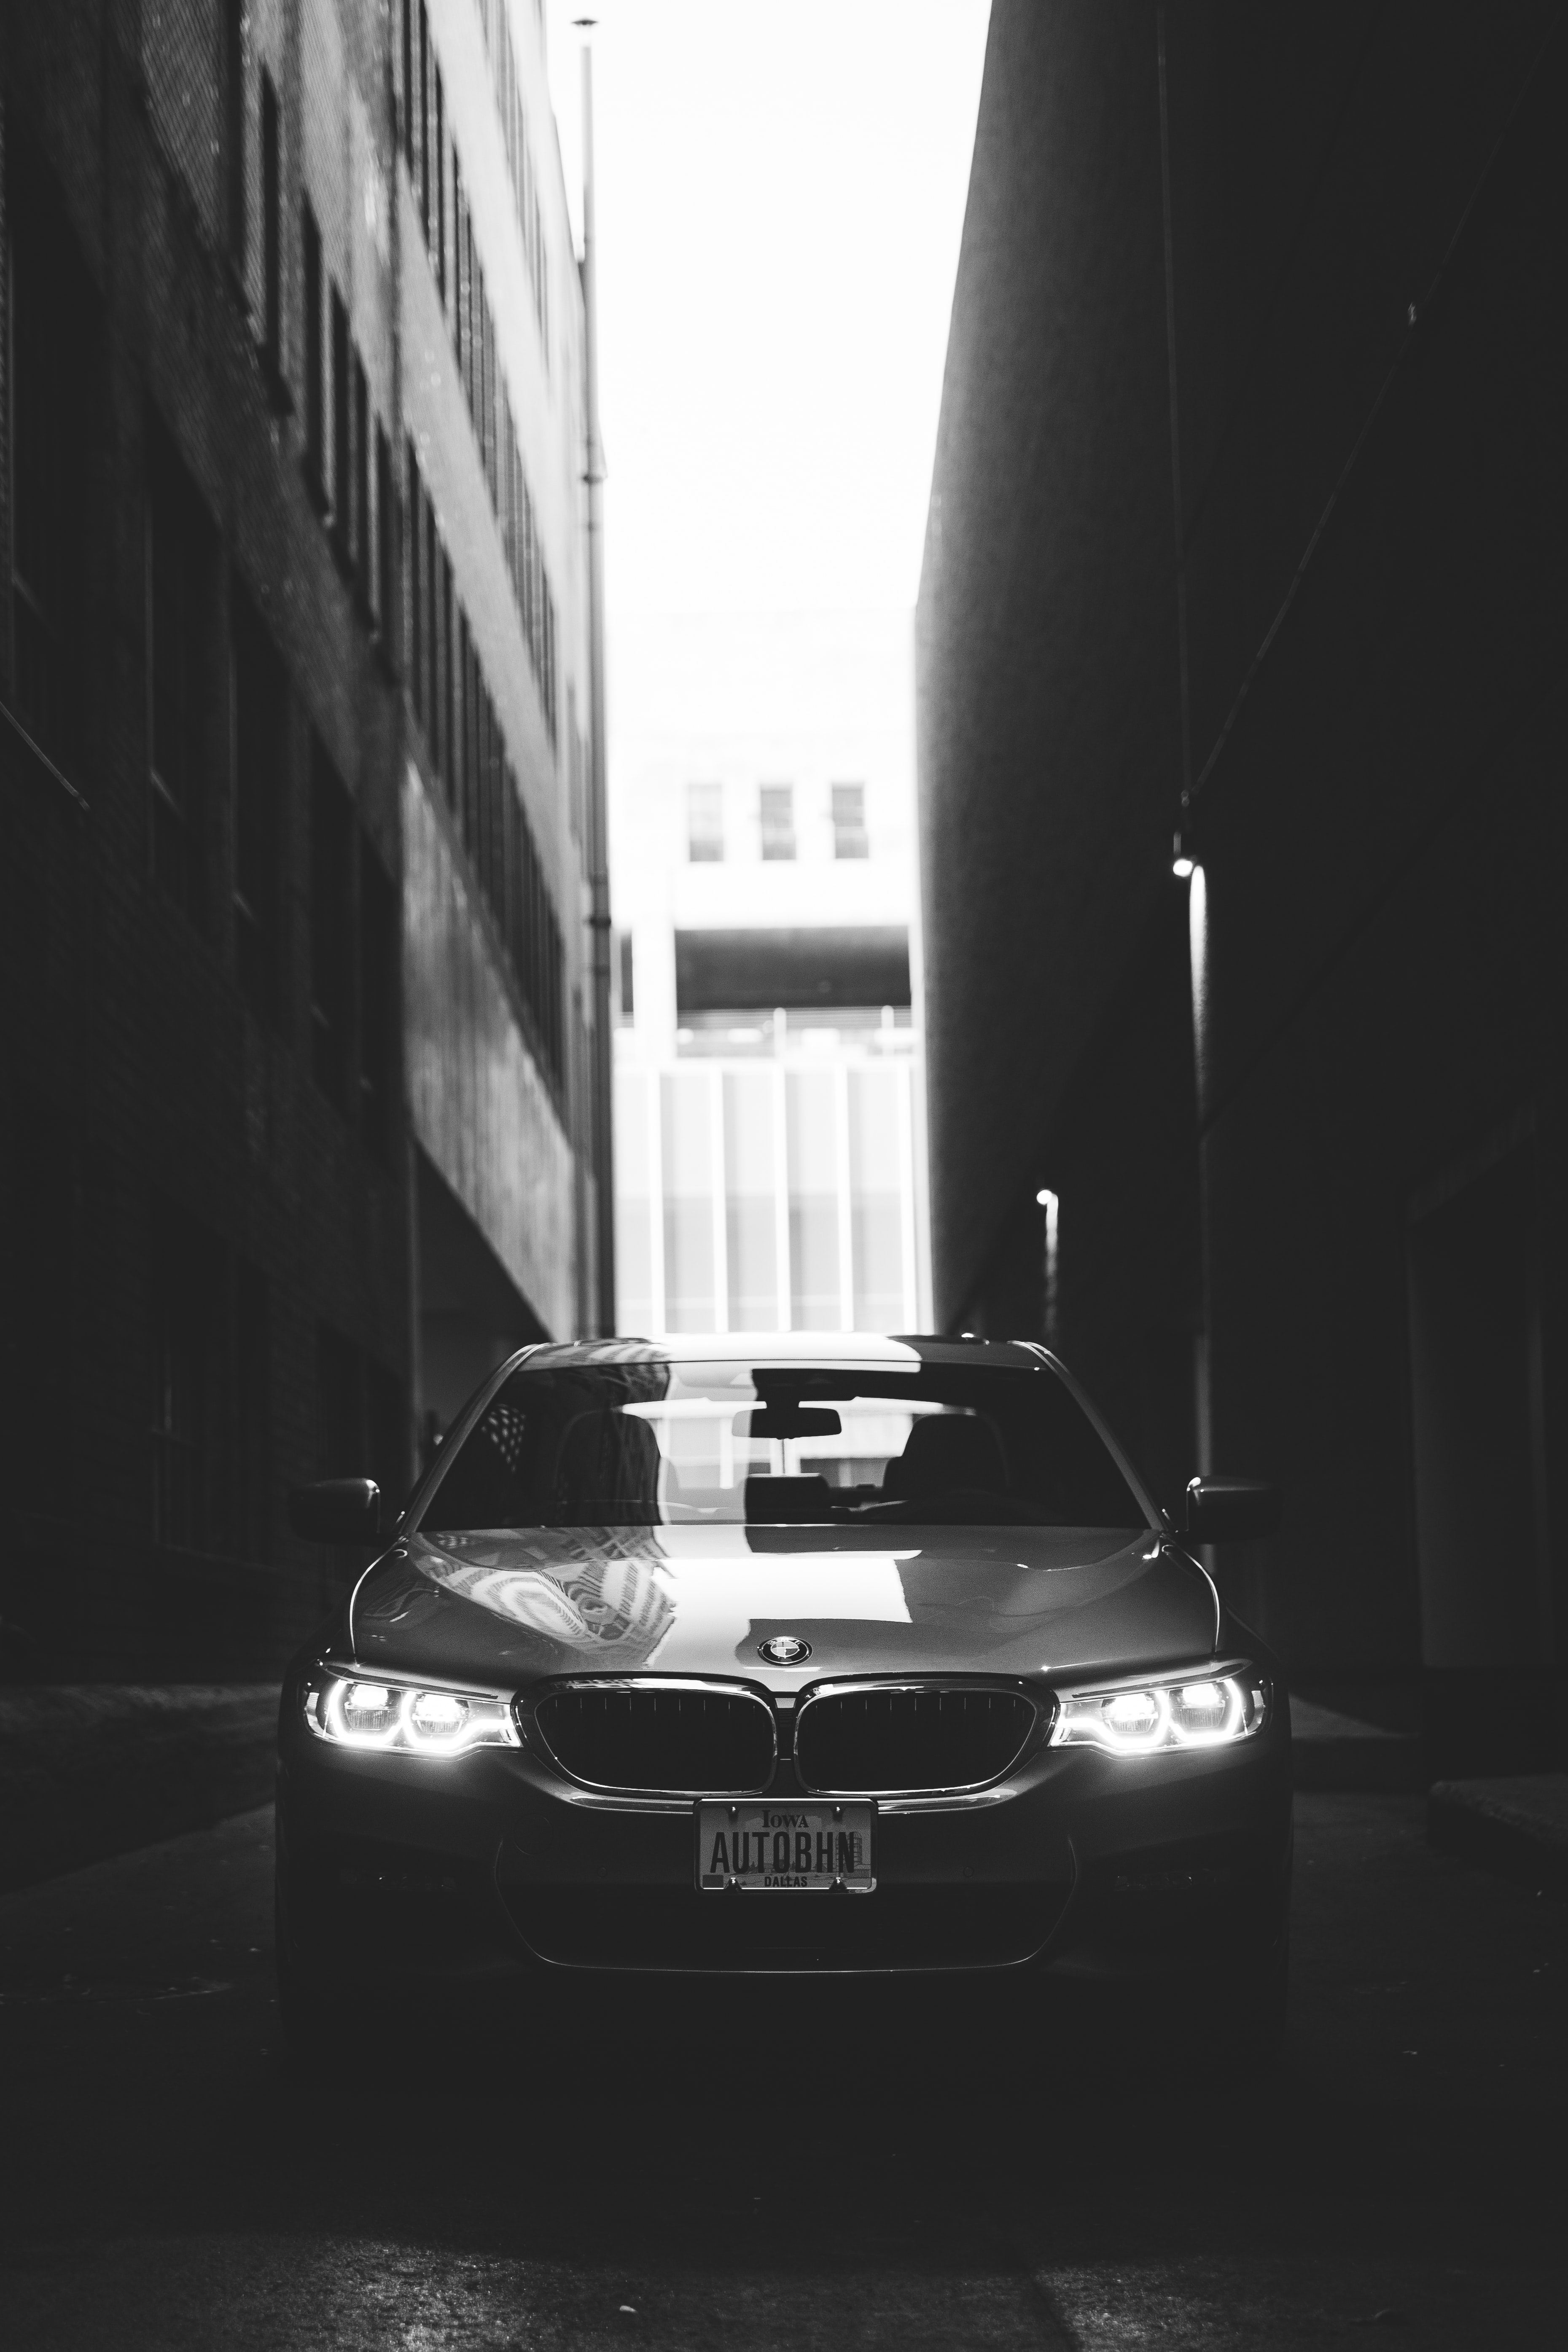 grayscale photo of BMW car parked between buildings